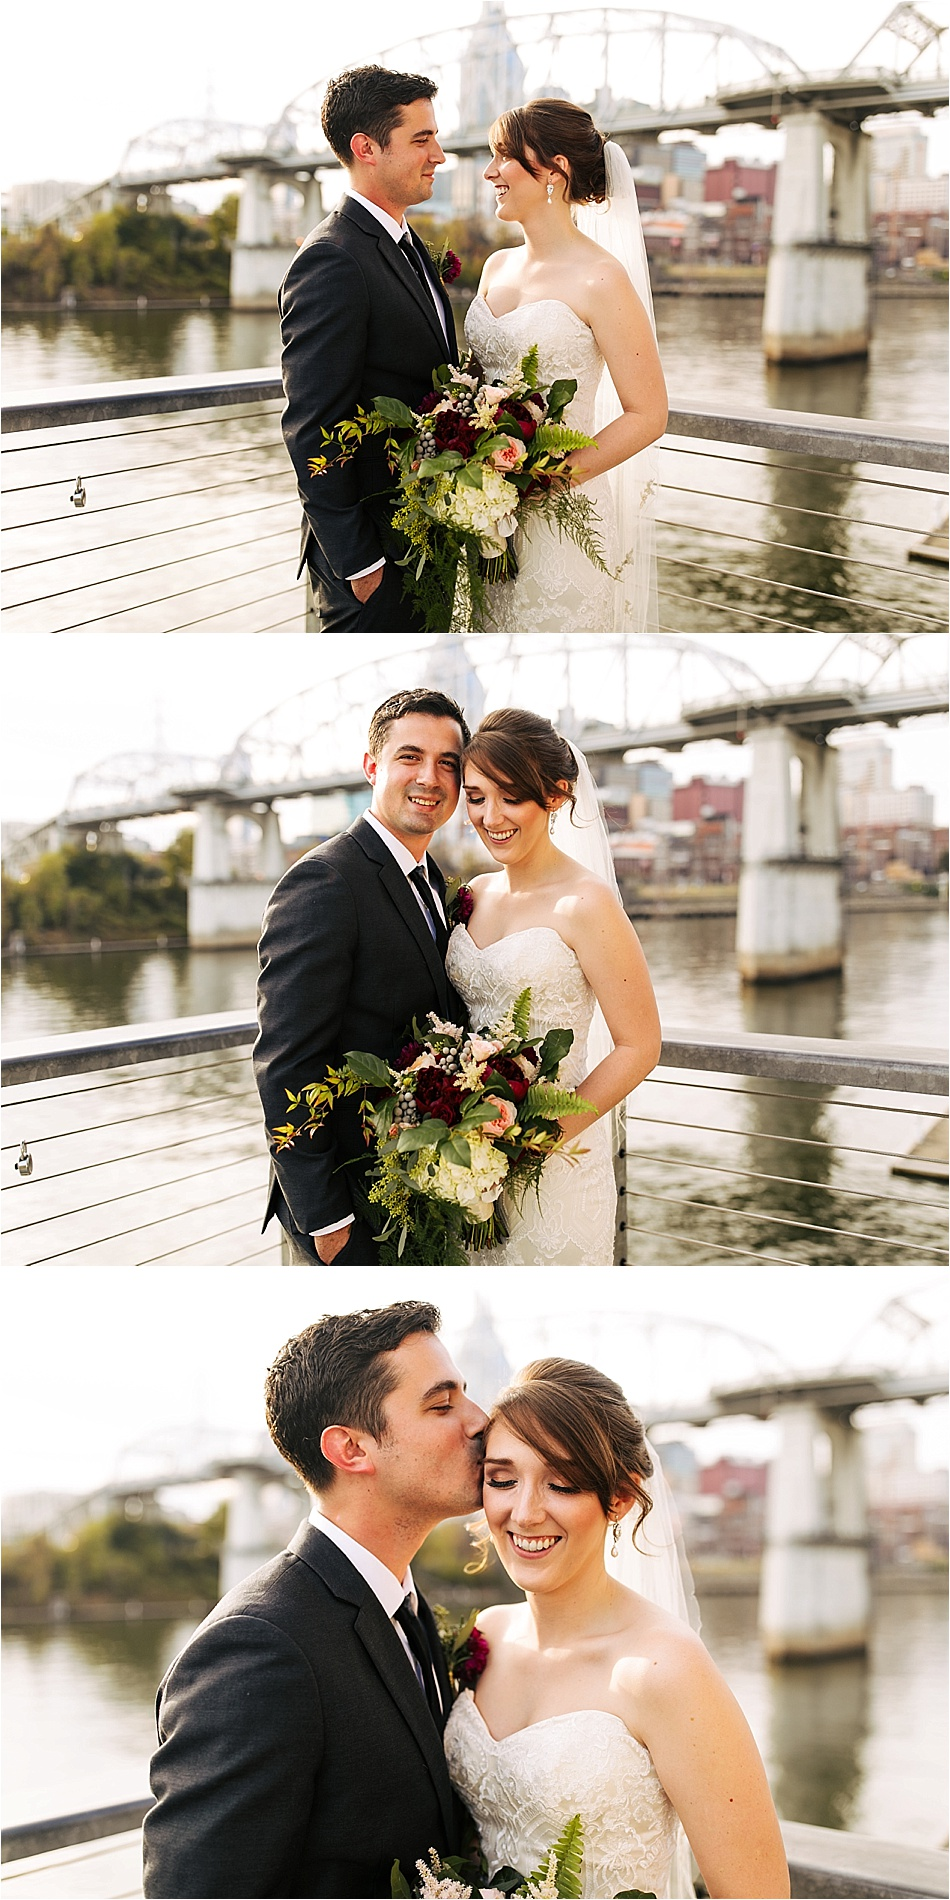 CK-Photo-Nashville-engagement-wedding-photographer-the-bridge-building